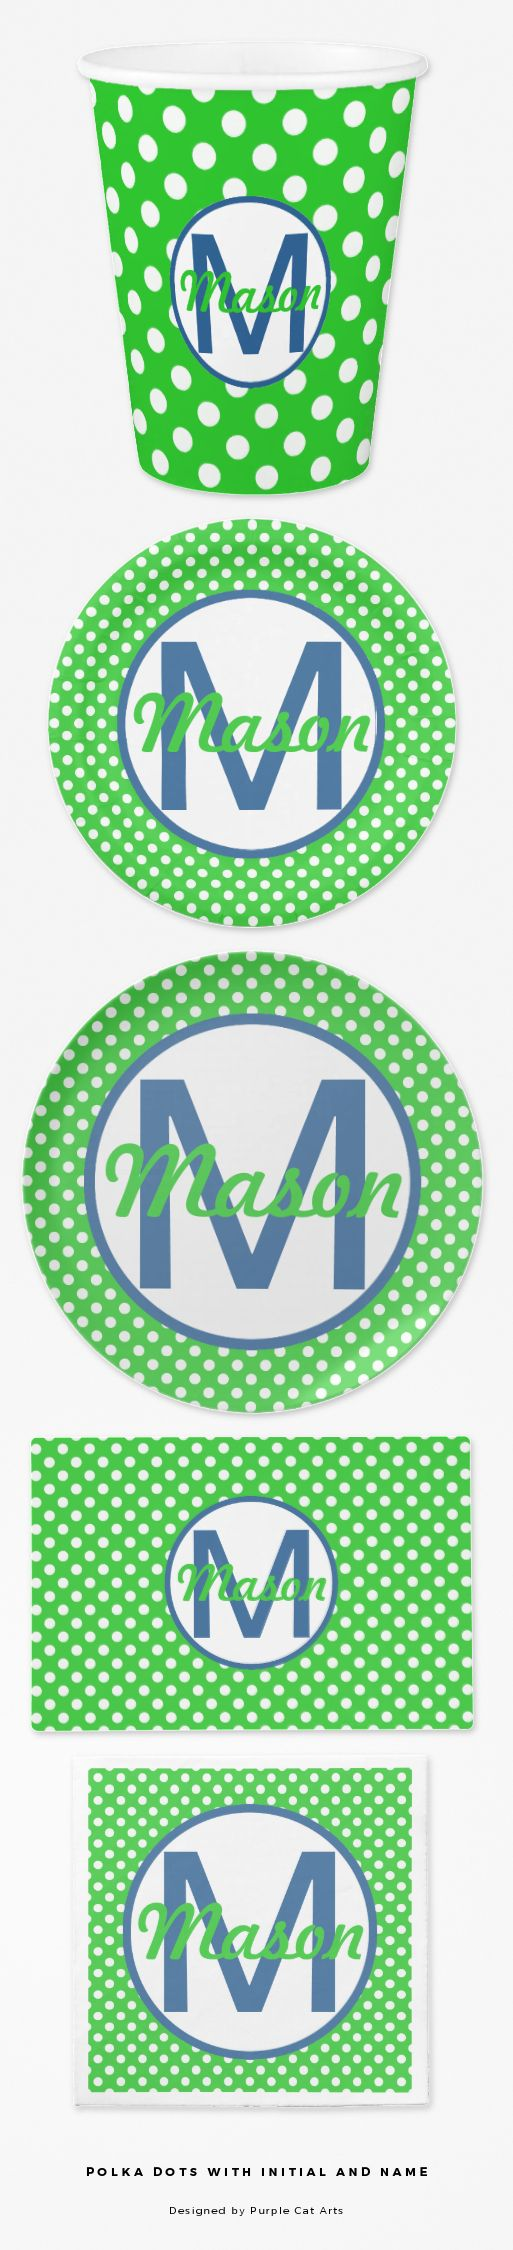 Polka Dots with Initial and Name breakfast, lunch and dinner ware for young children. #plate #napkin #cup #placemat #blueandgreen #polkadots